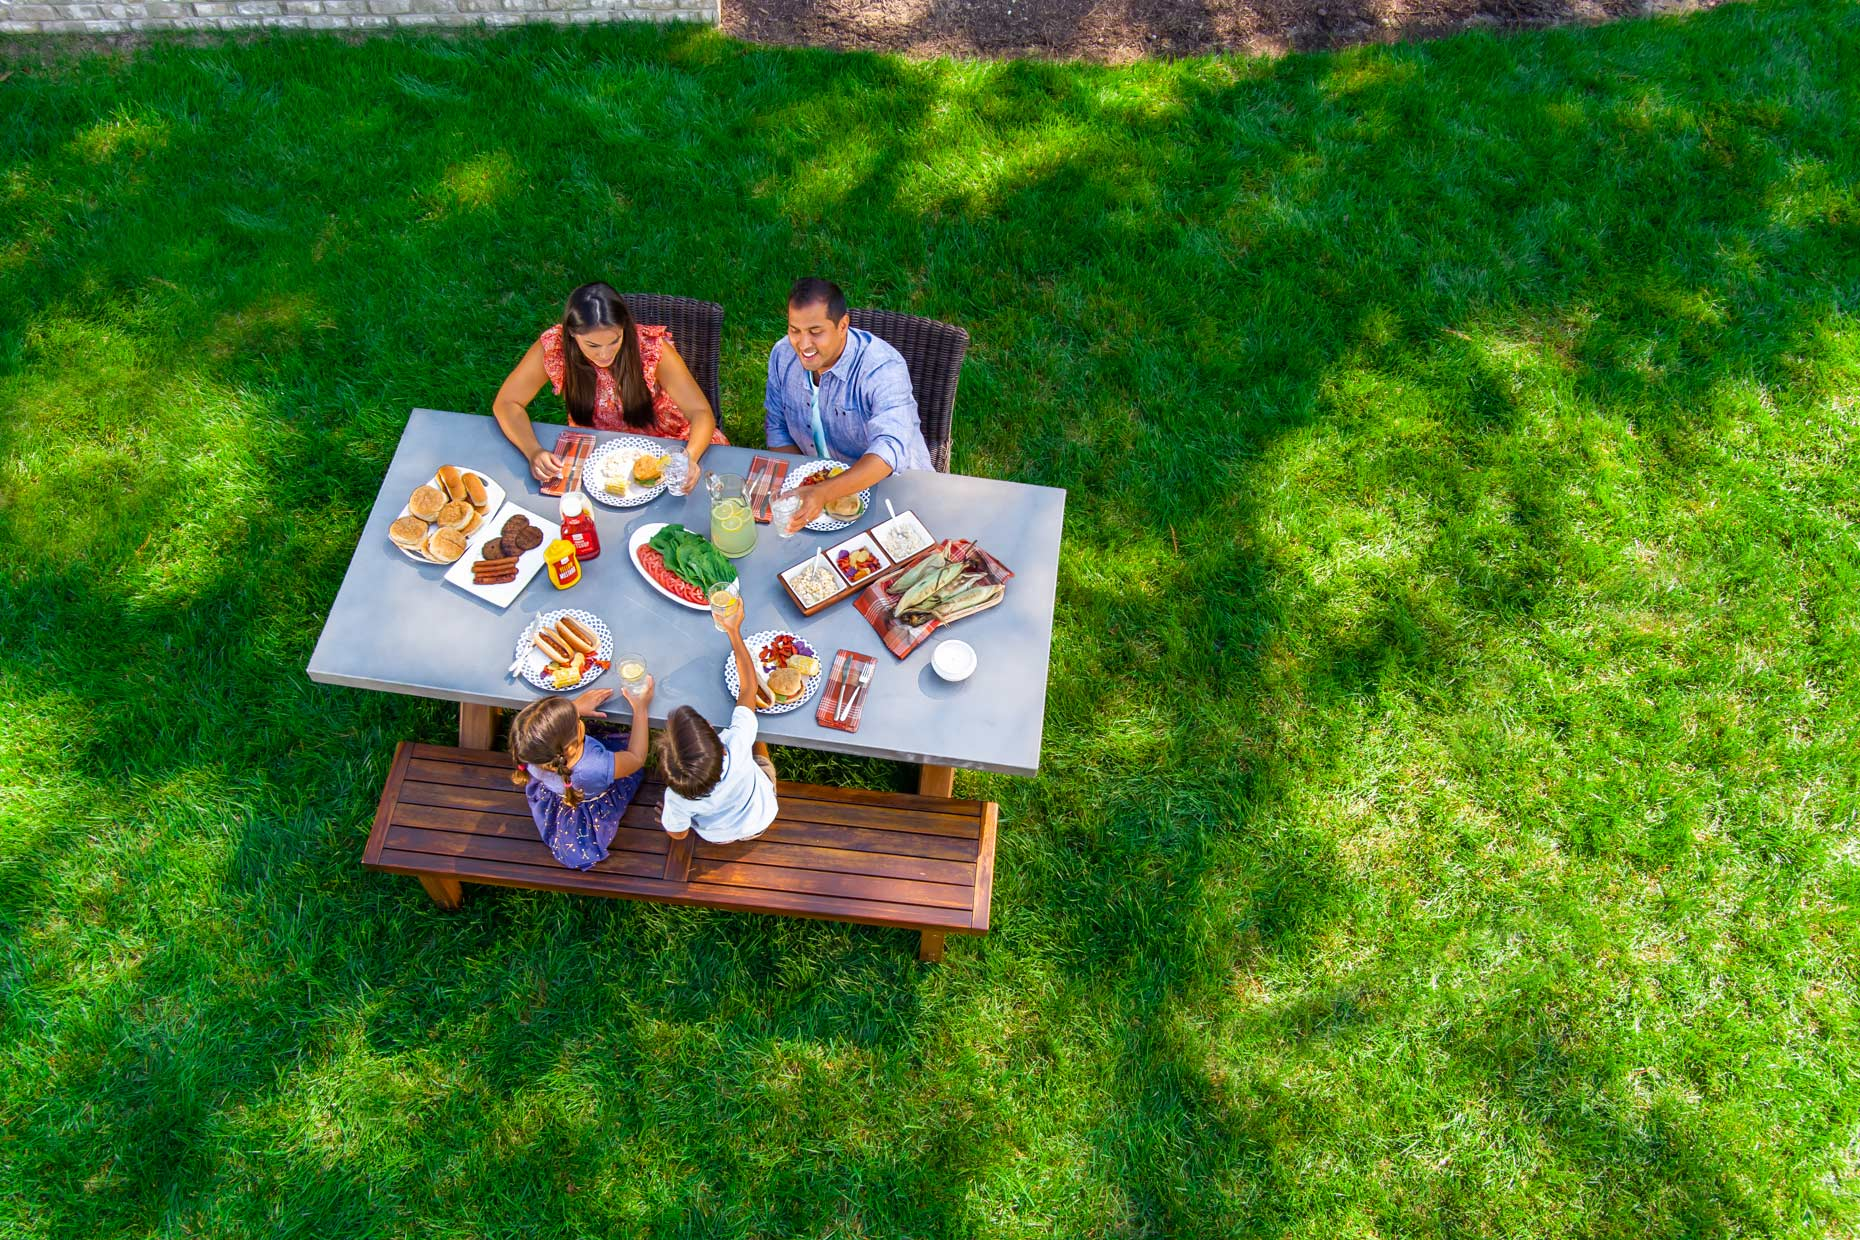 200922_overhead-view-family-at-backyard-picnic-table_Robert_Holland